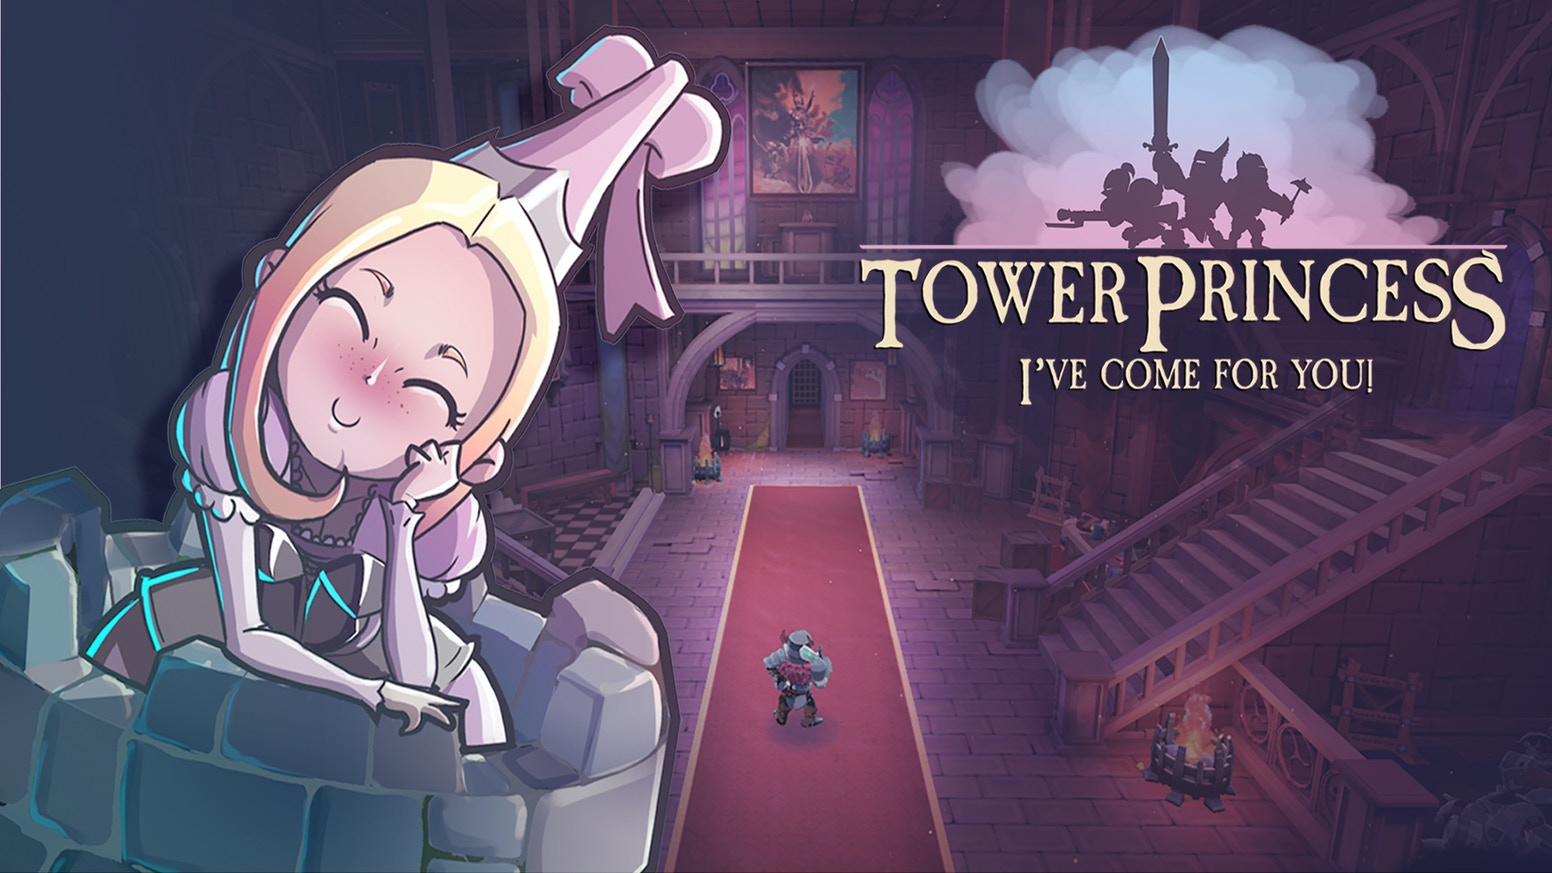 Rescuing the princess won't be enough anymore! You'll have to date her while facing a procedural dungeon in this 3D action platformer!